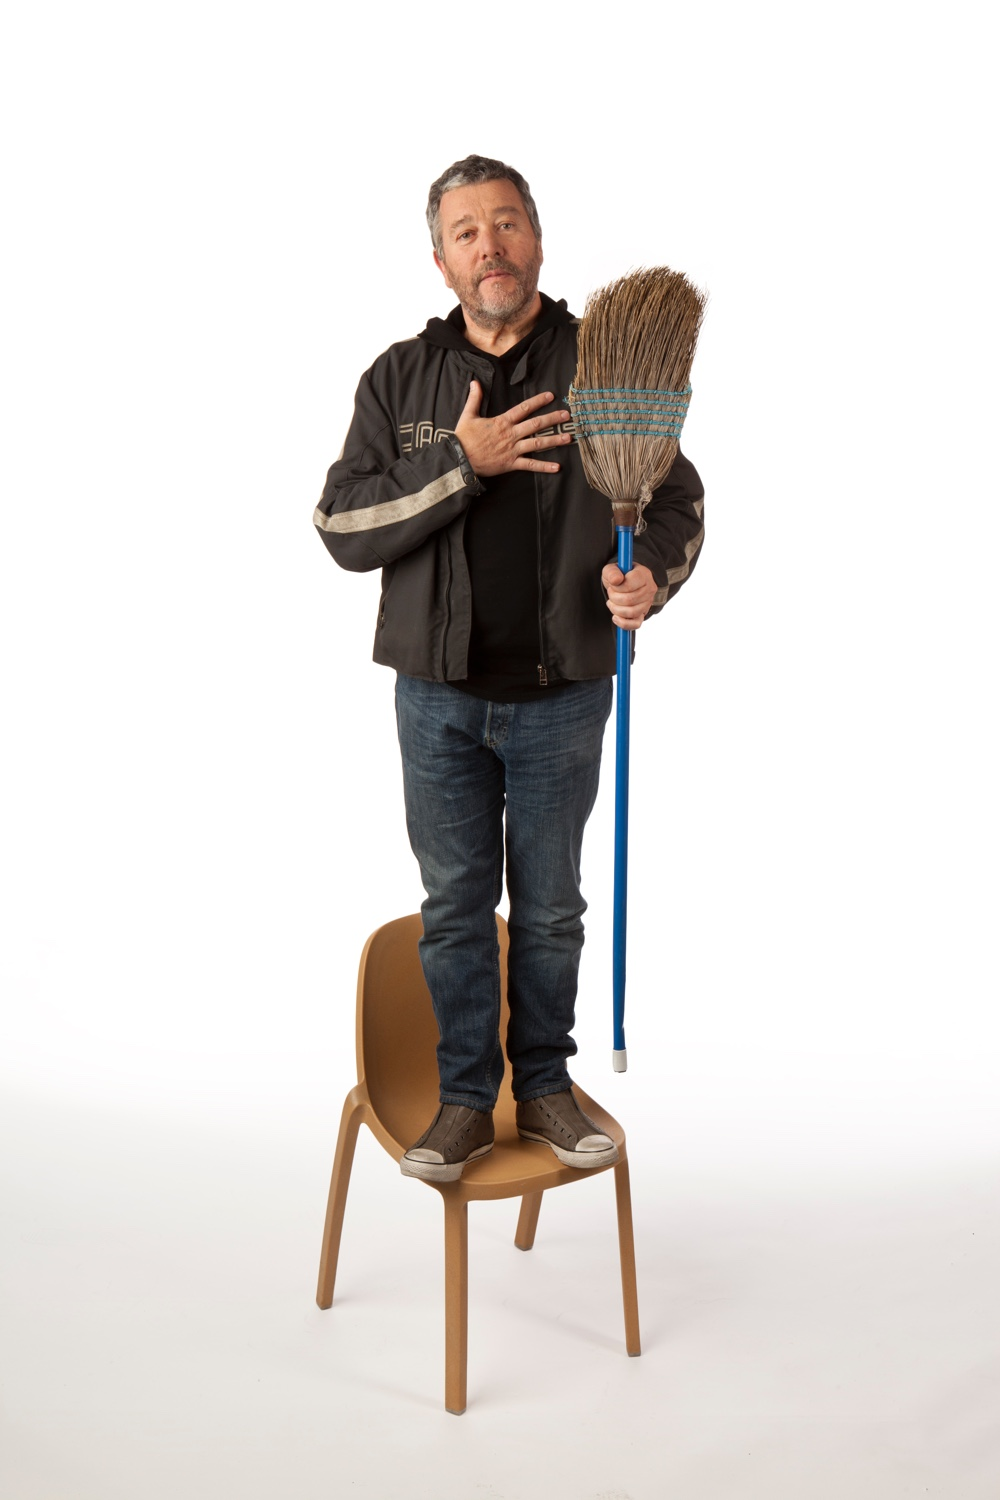 Philippe Starck and the Broom chair. Image courtesy of Emeco.